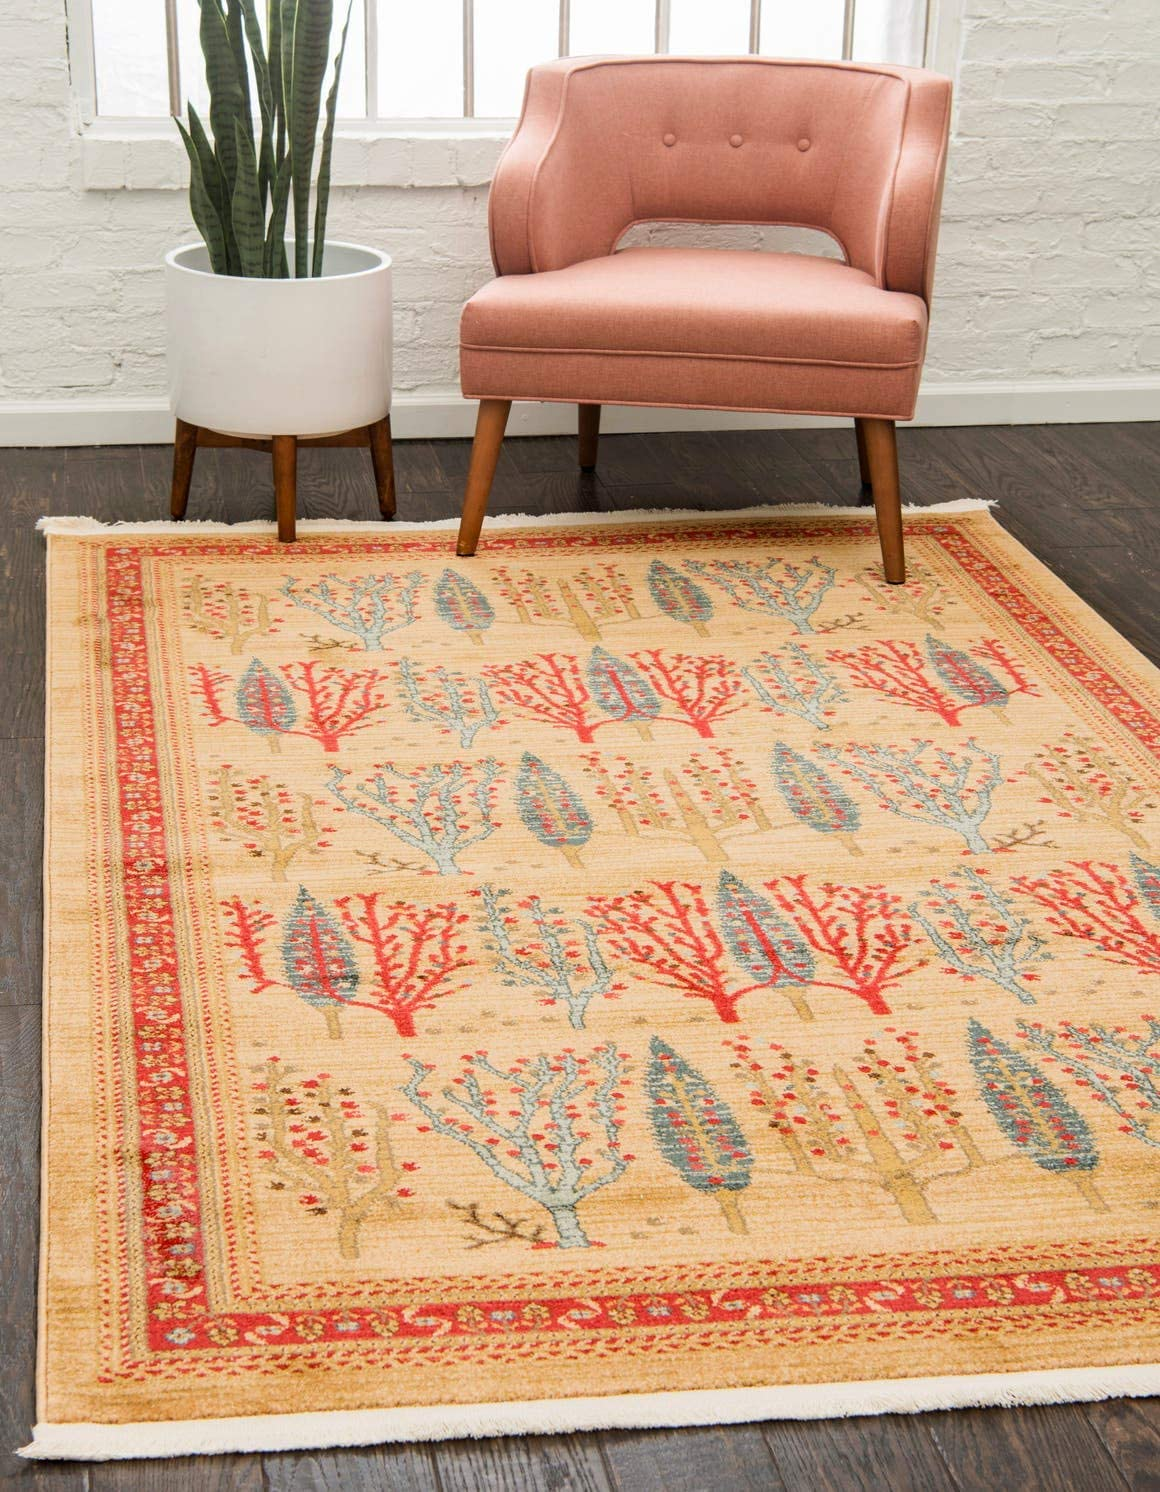 Unique Loom Fars Collection Tribal Modern Casual Tan Area Rug 9 0 x 12 0